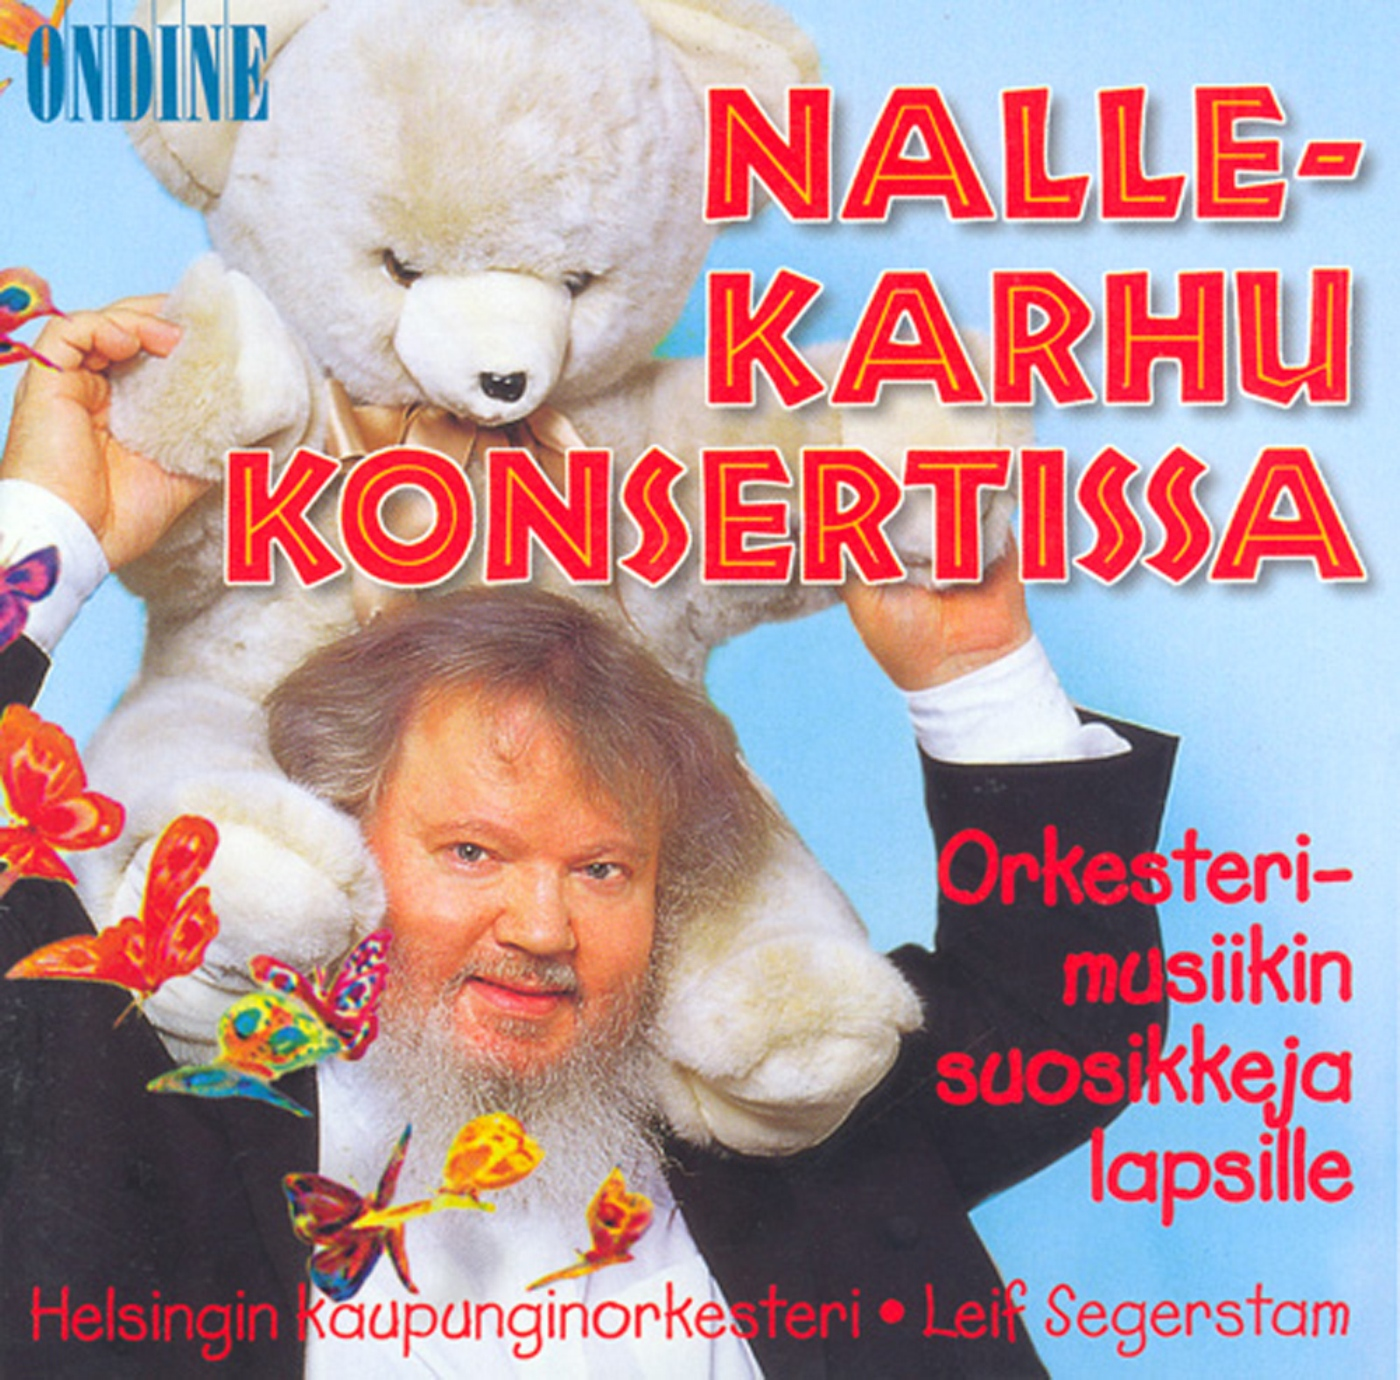 Children (Classical Favourites for) - Teddy Bear at the Concert Orkesterimusiikin suosikkeja lapsille (Nallekarhu konsertissa)